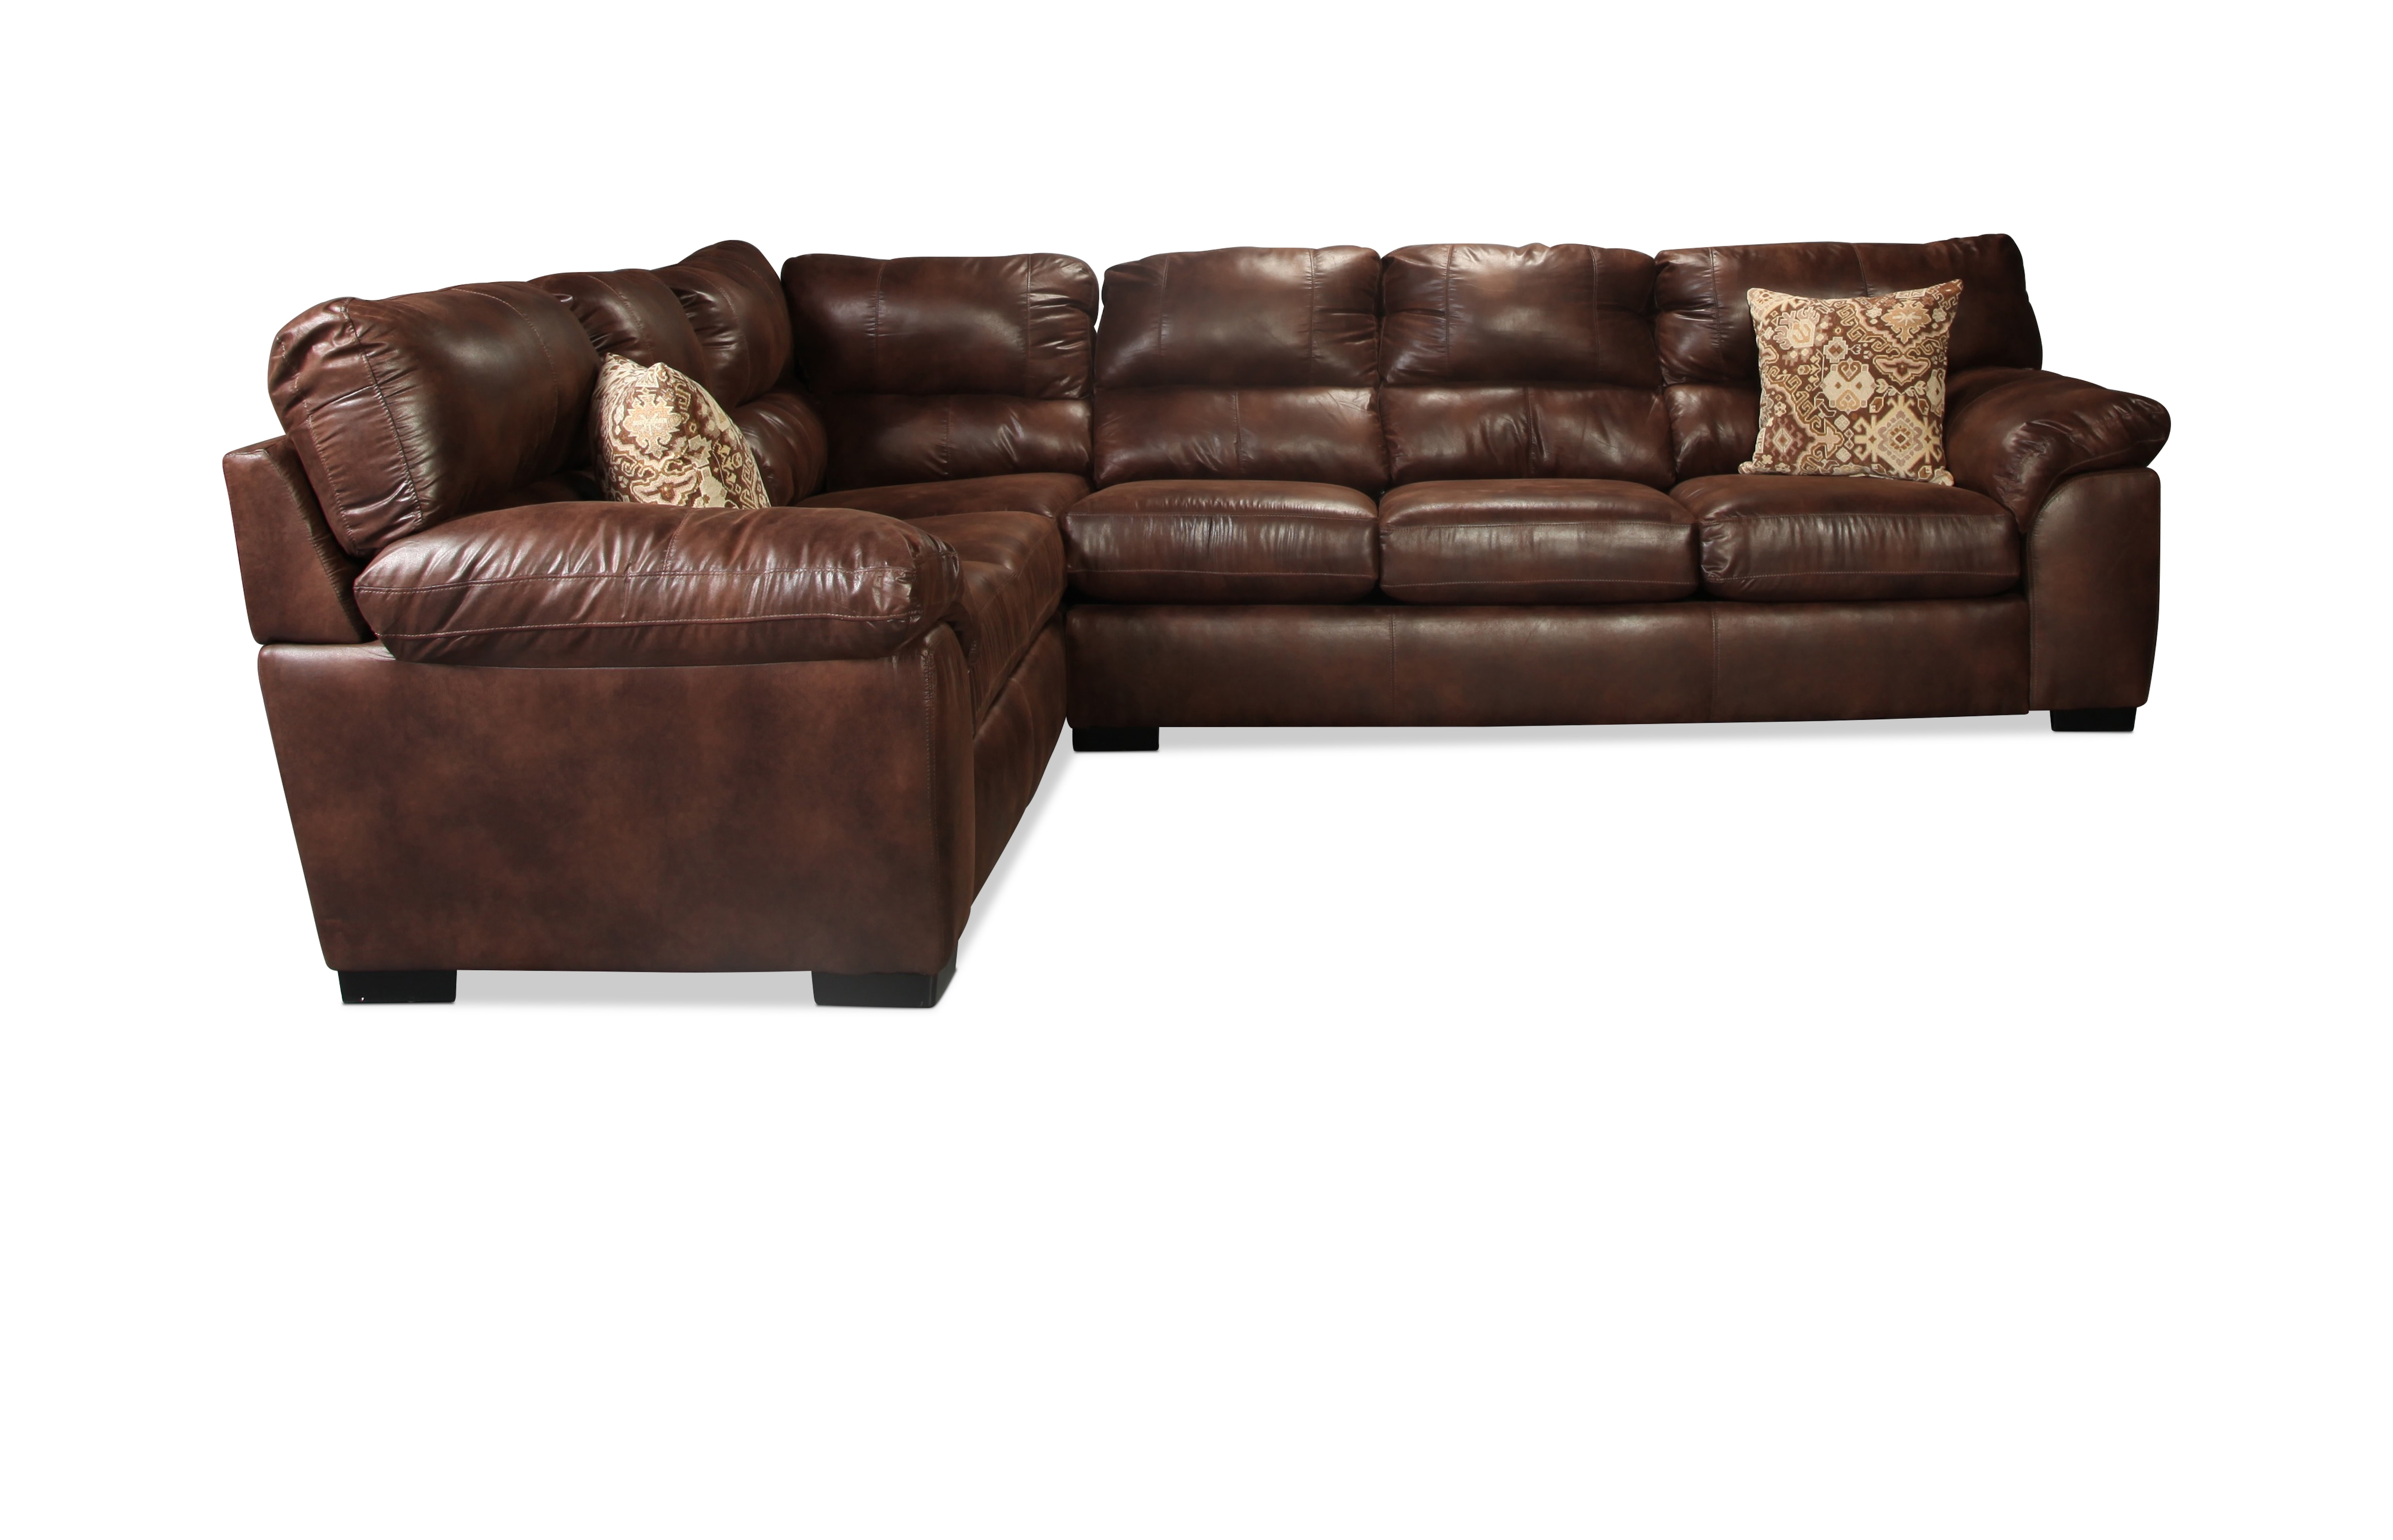 Provo 2-Piece Sectional - Chocolate